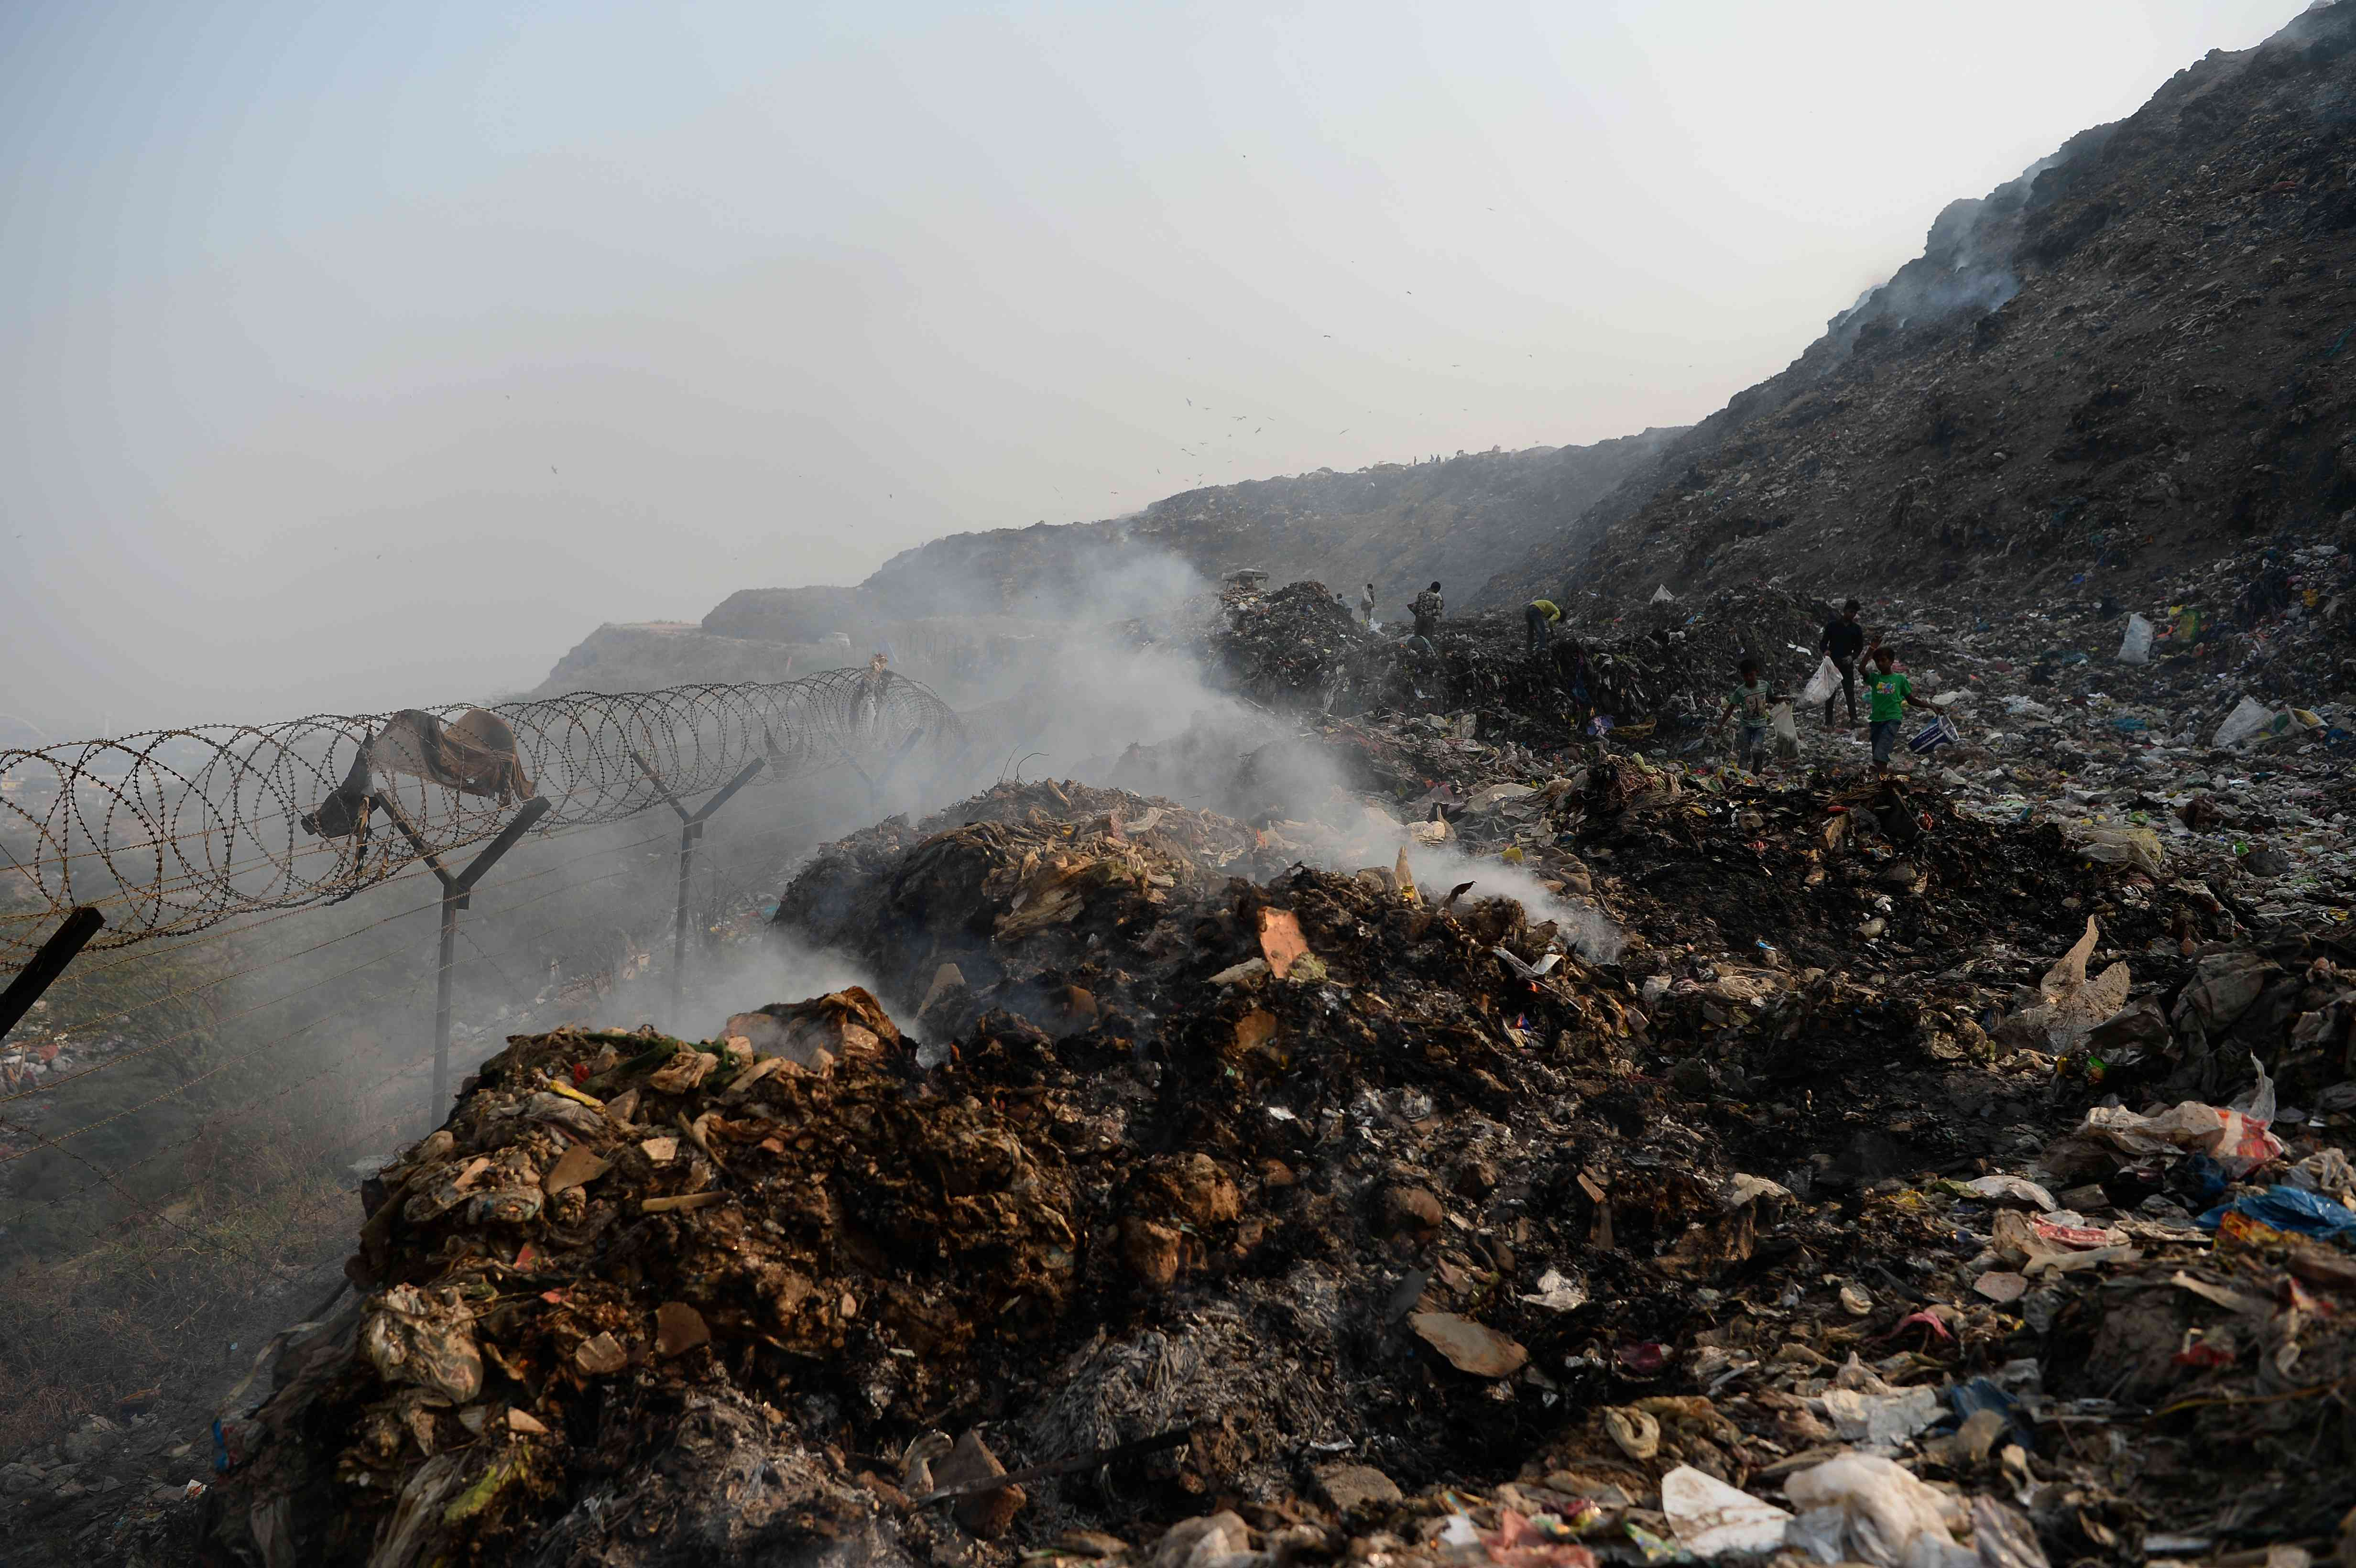 Smoke rises from the garbage at the Bhalswa landfill site. (Photo Credit: Sajjad Hussain/AFP).